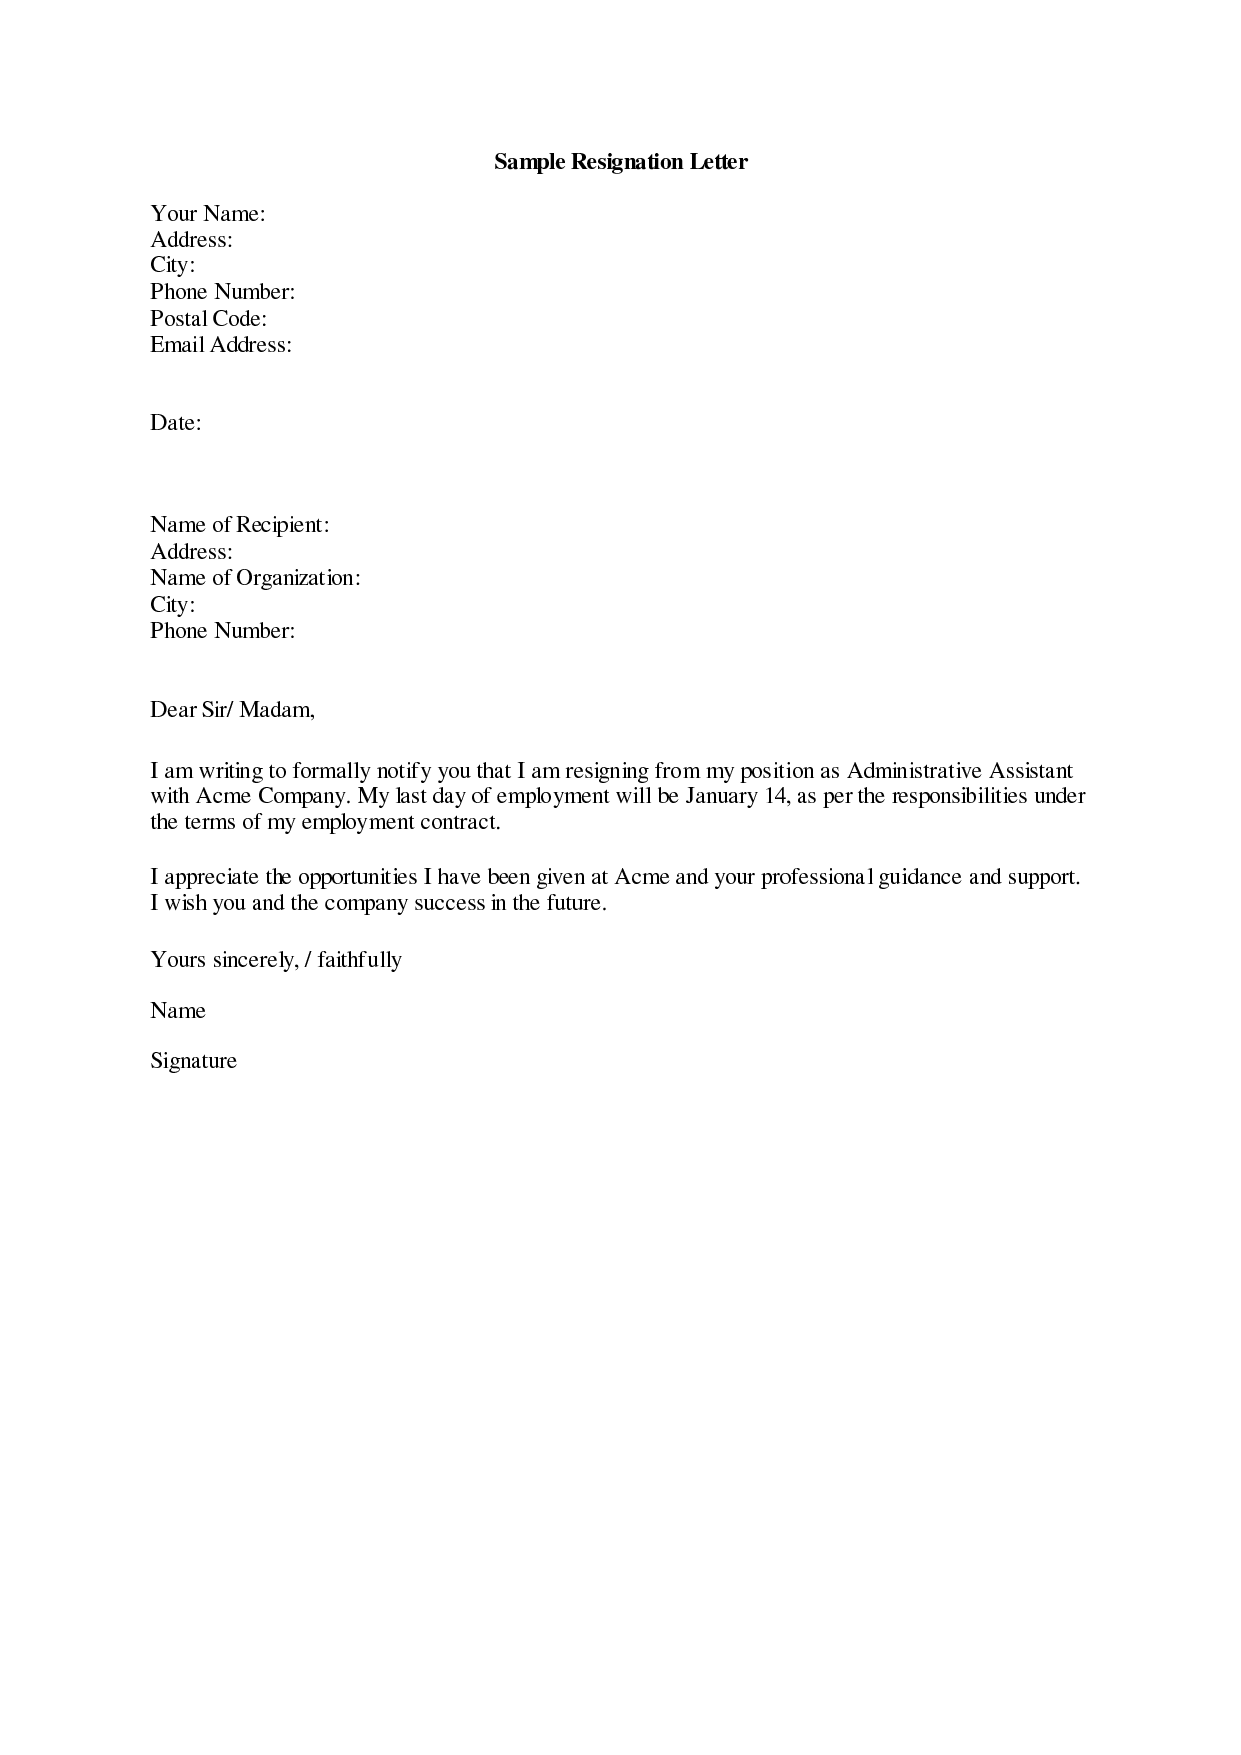 Example Resignation Letter Thebridgesummit Co